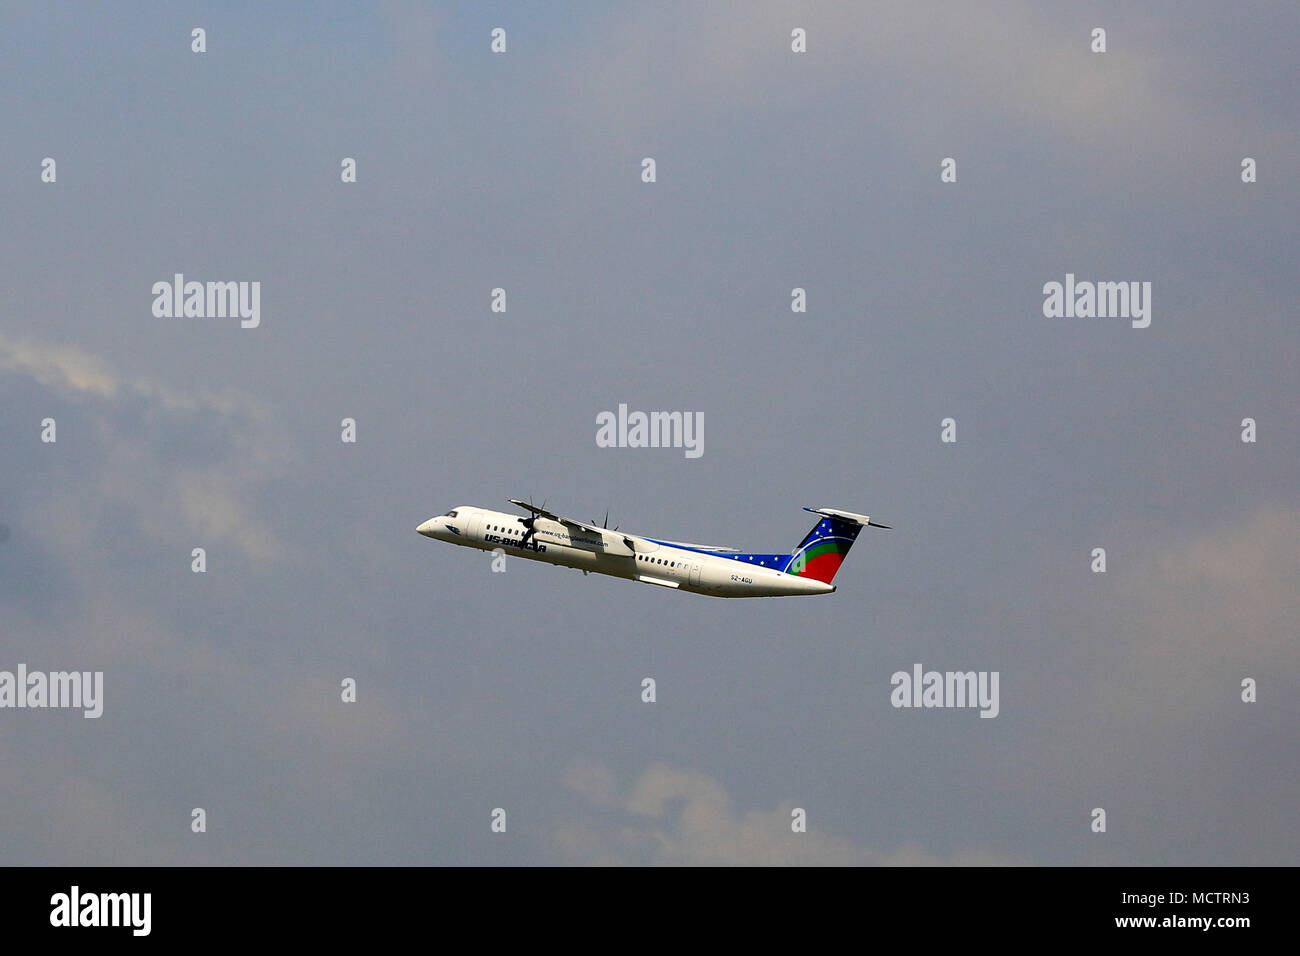 US Bangla Airlines Bombardier Dash 8 Q–400 aircraft flying from the Hazrat Shahjalal International Airport. This aircraft crashed at Tribhuvan Interna - Stock Image